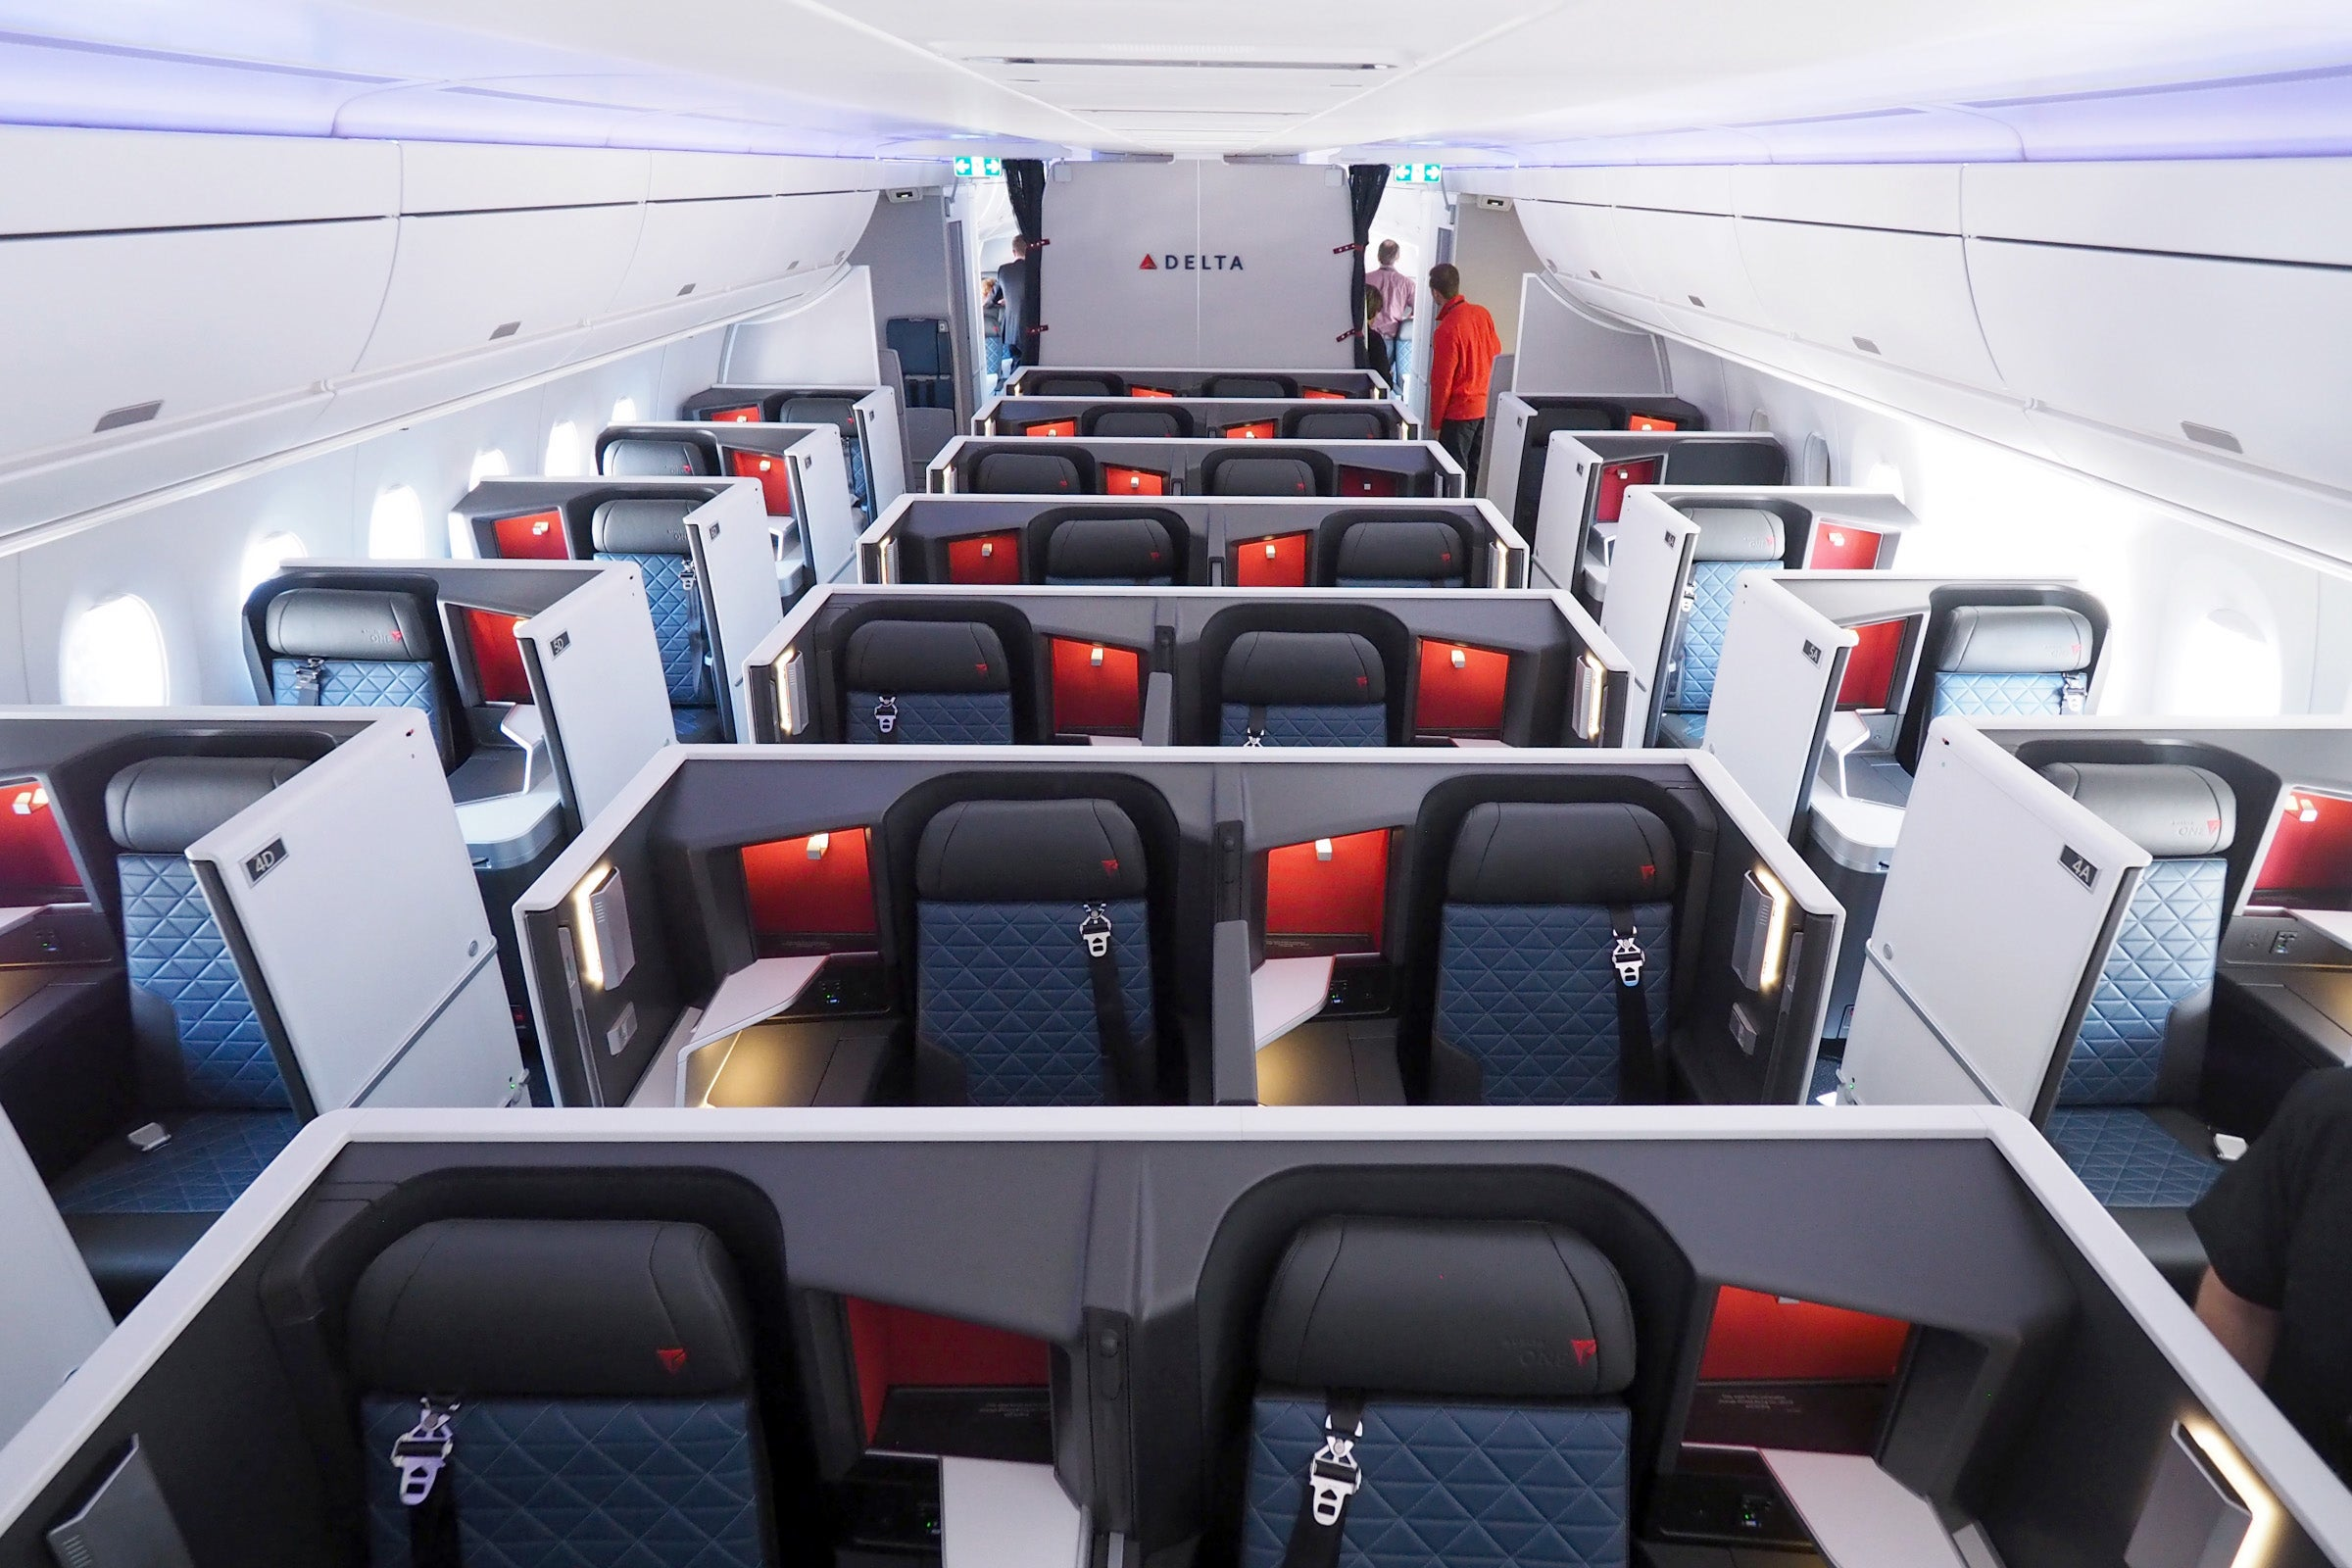 How to book Delta One Suites to Europe for just 39,000 points